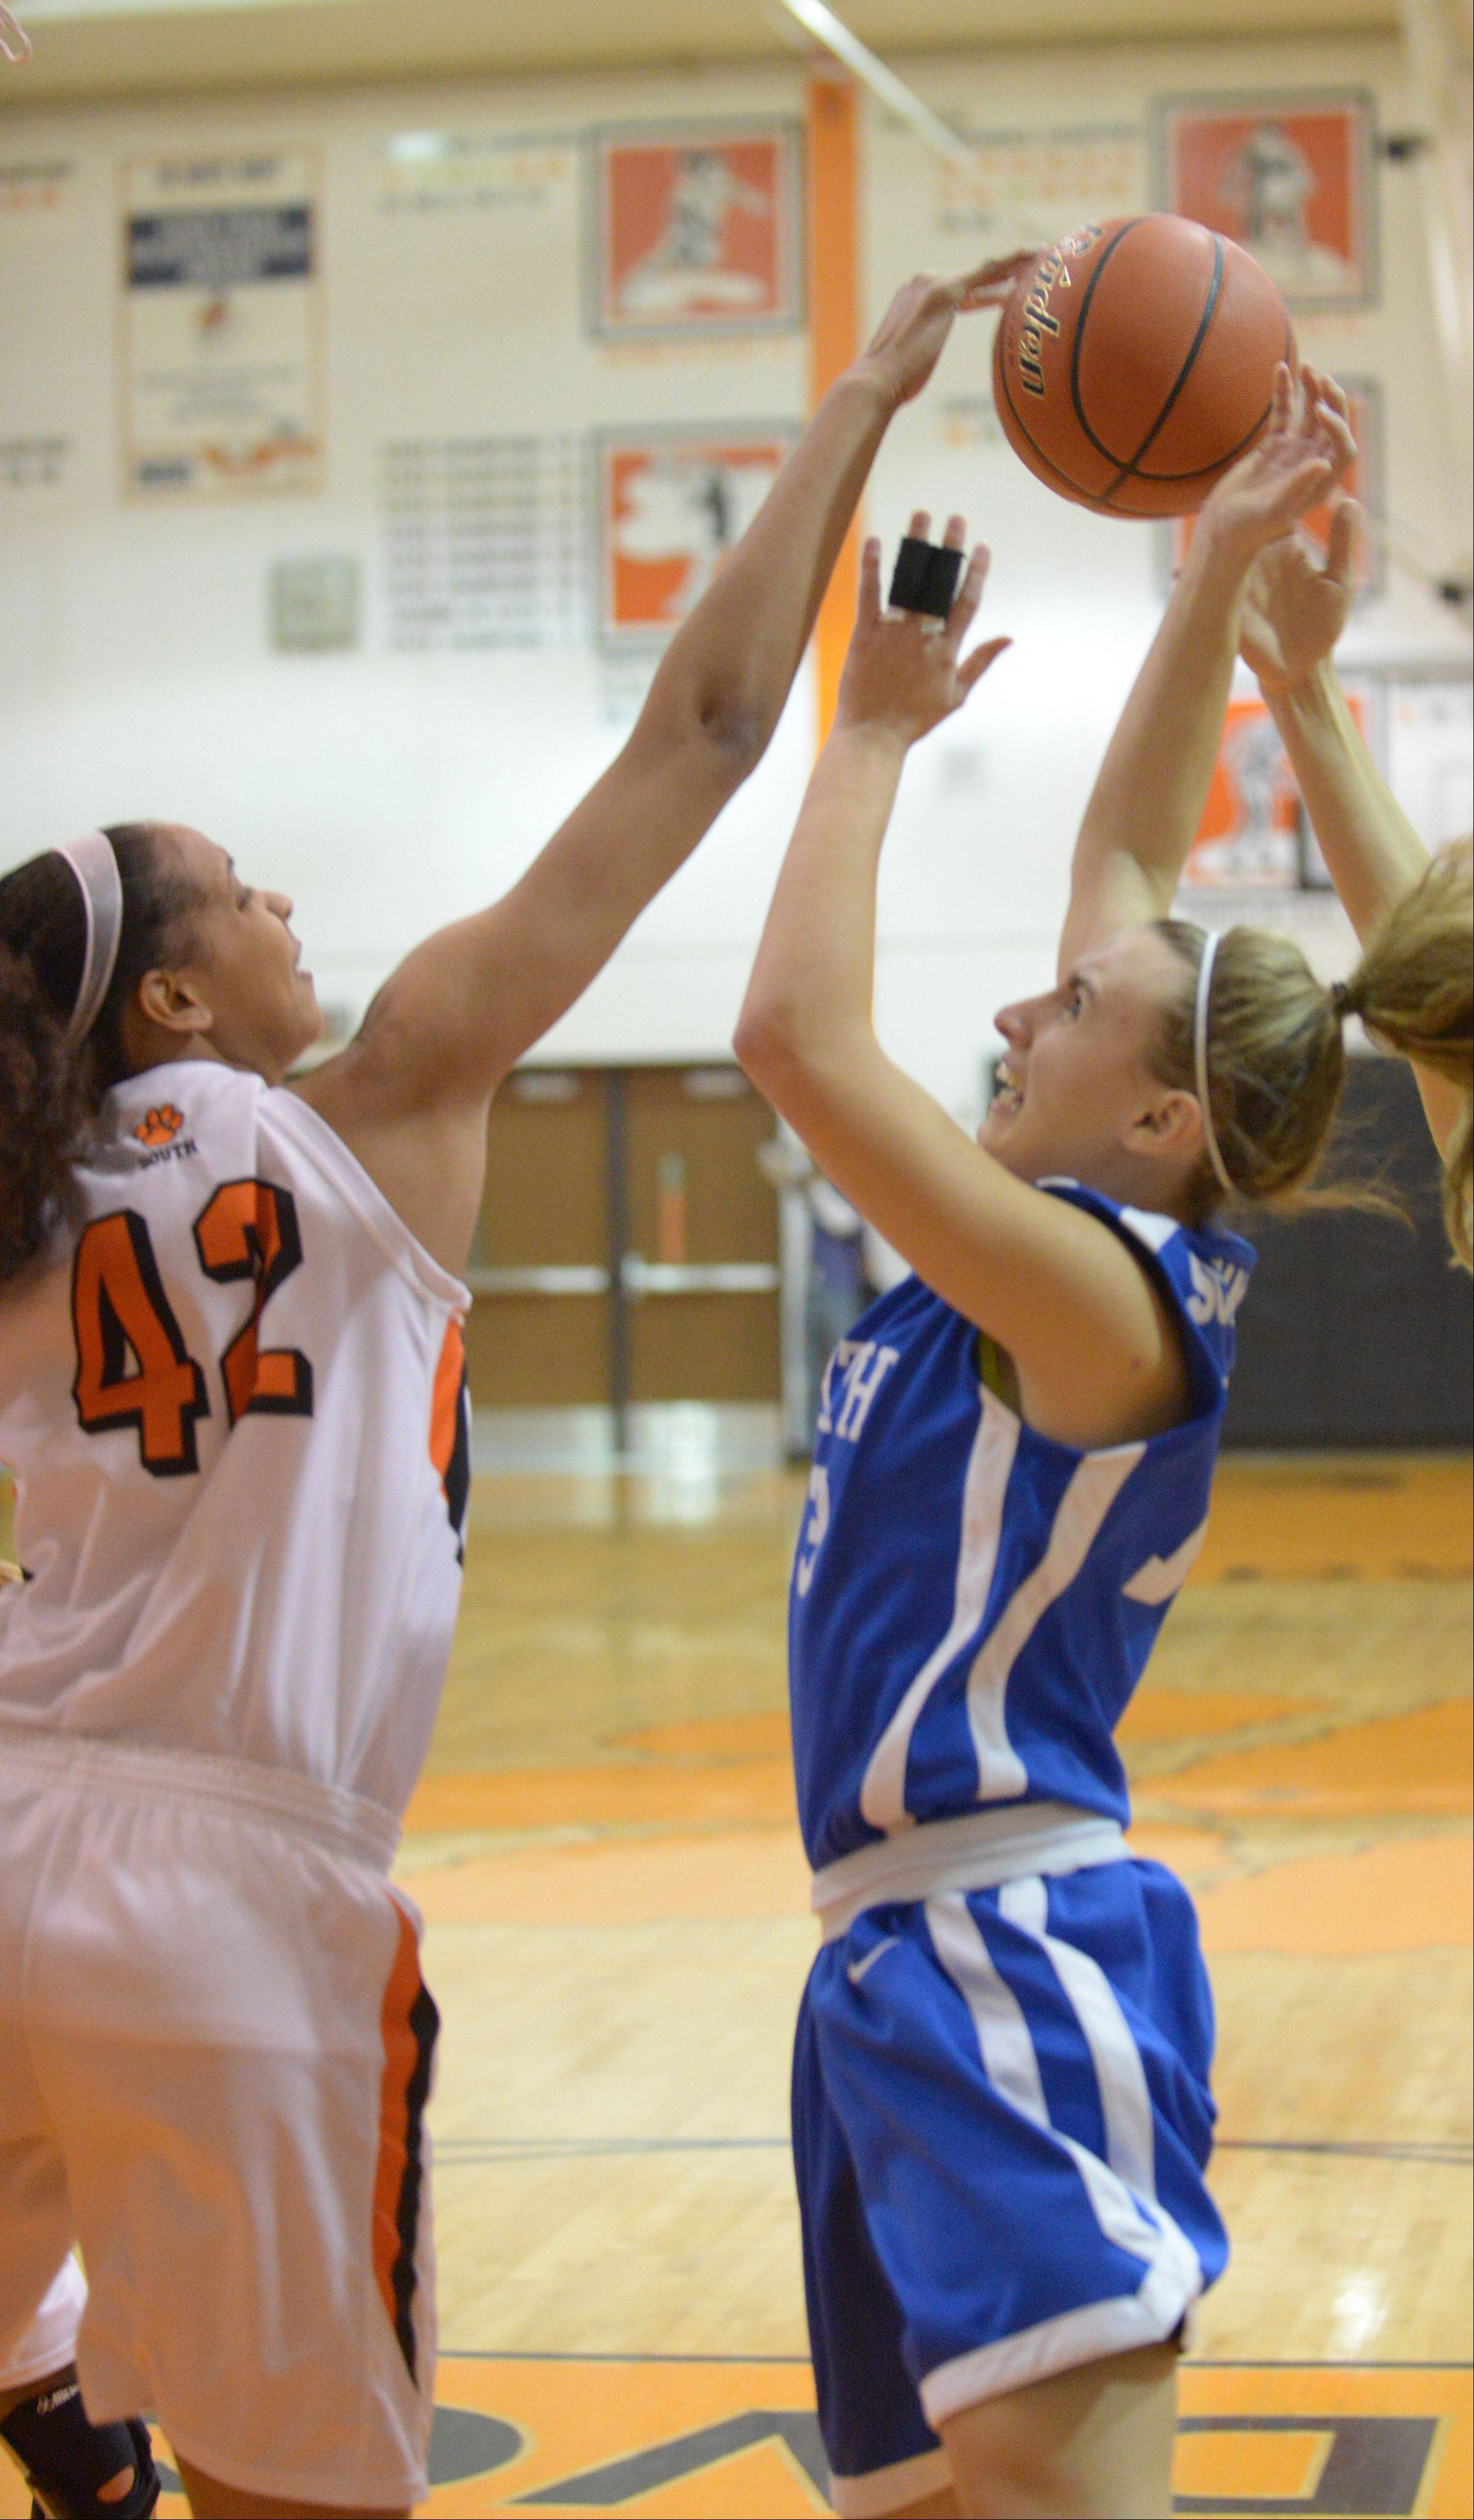 Diamond Thompson of Wheaton South,left, tries to block Brooke Schanowski of Wheaton North during the Wheaton North at Wheaton Warrenville South girls basketball game Thursday.